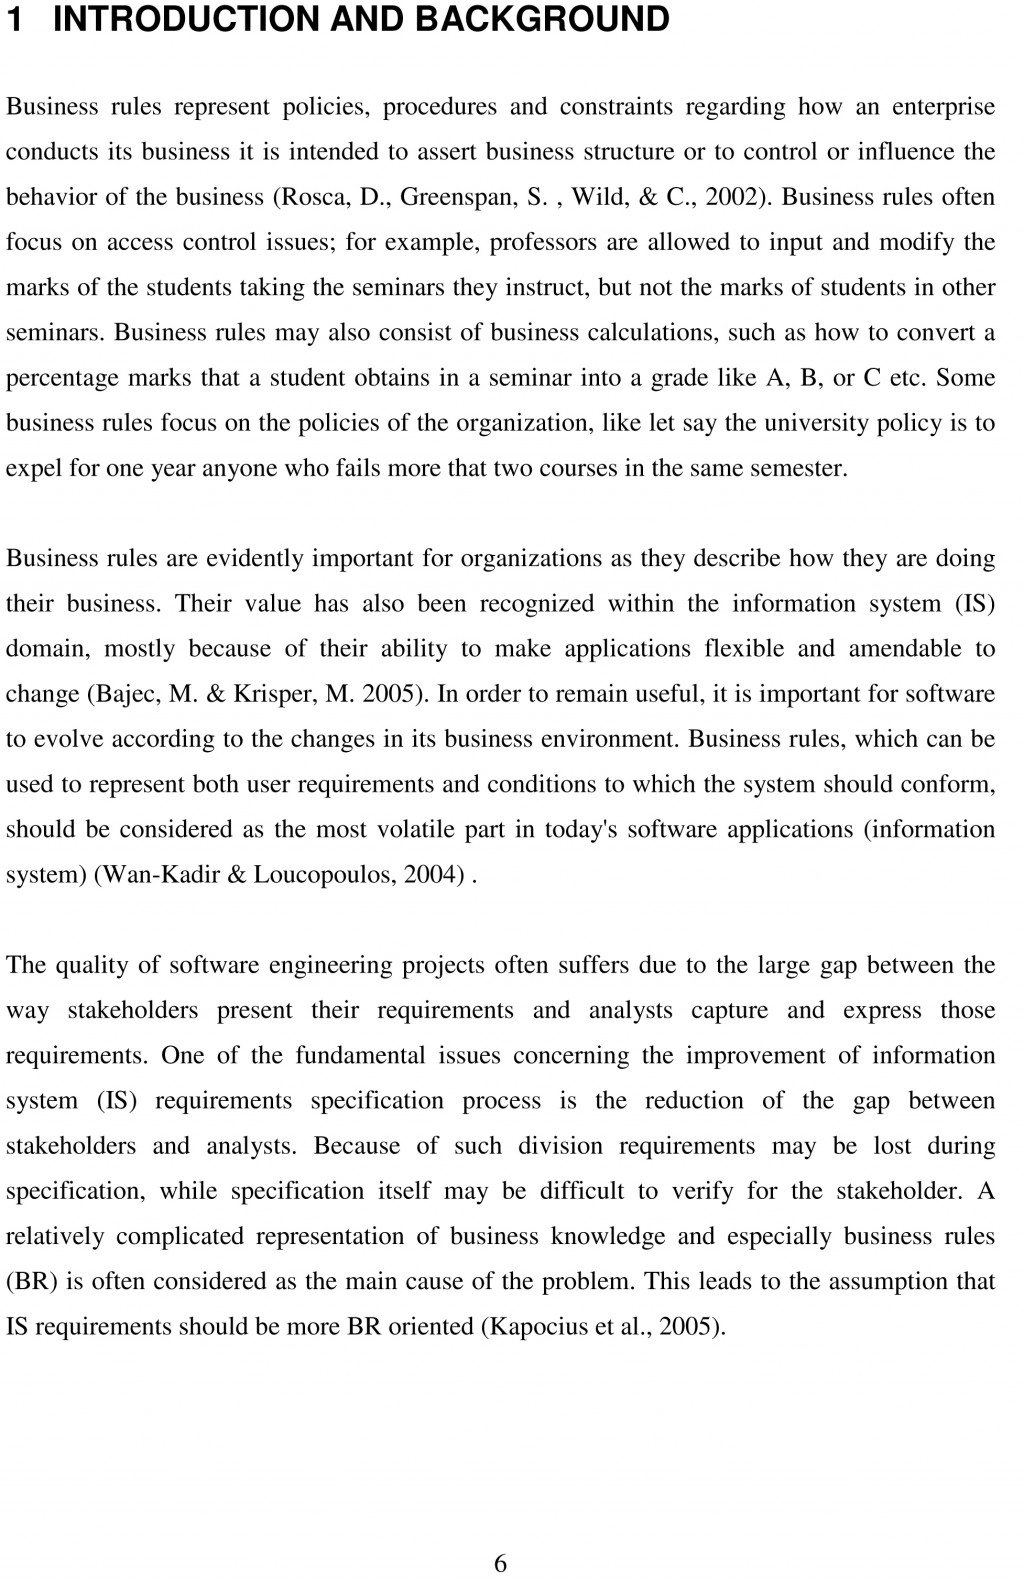 012 Opening Sentences For Essays Thesis Free Sample1 Essay Unique Good Closing Examples Great Introductory Ielts Large